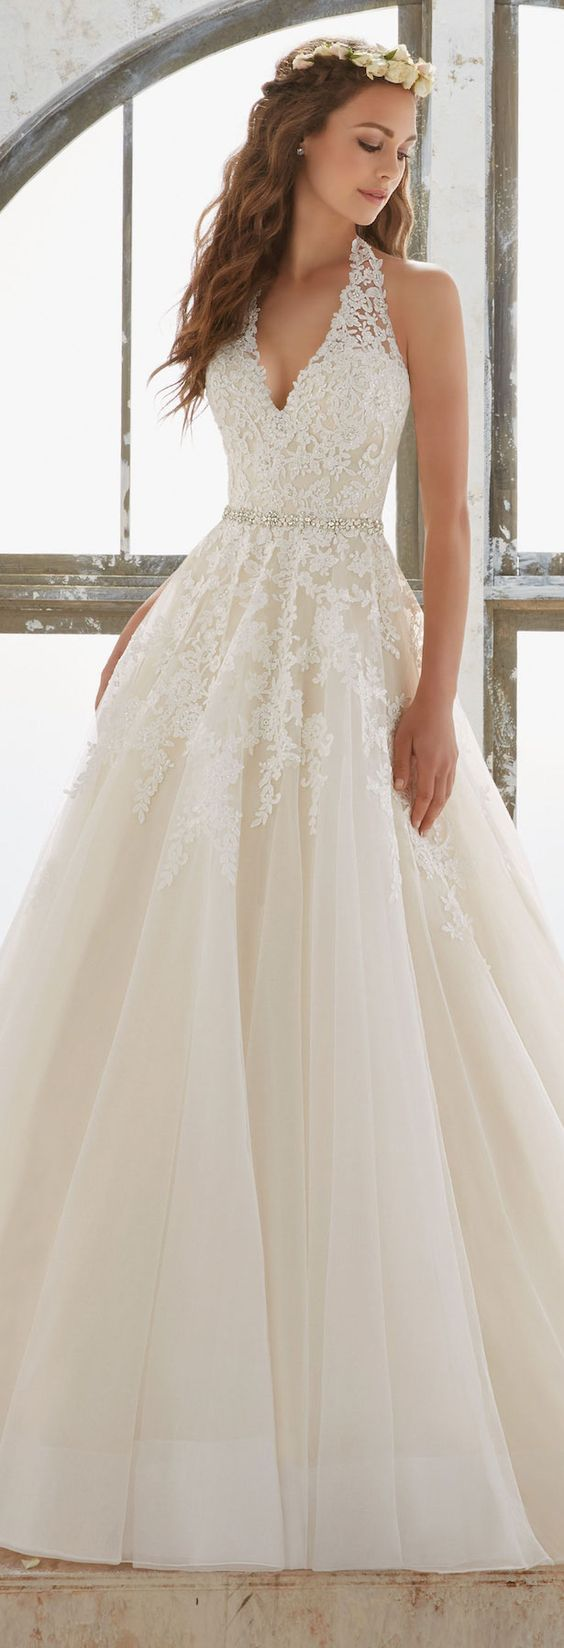 Featured Dress: Mori Lee; Wedding dress idea.